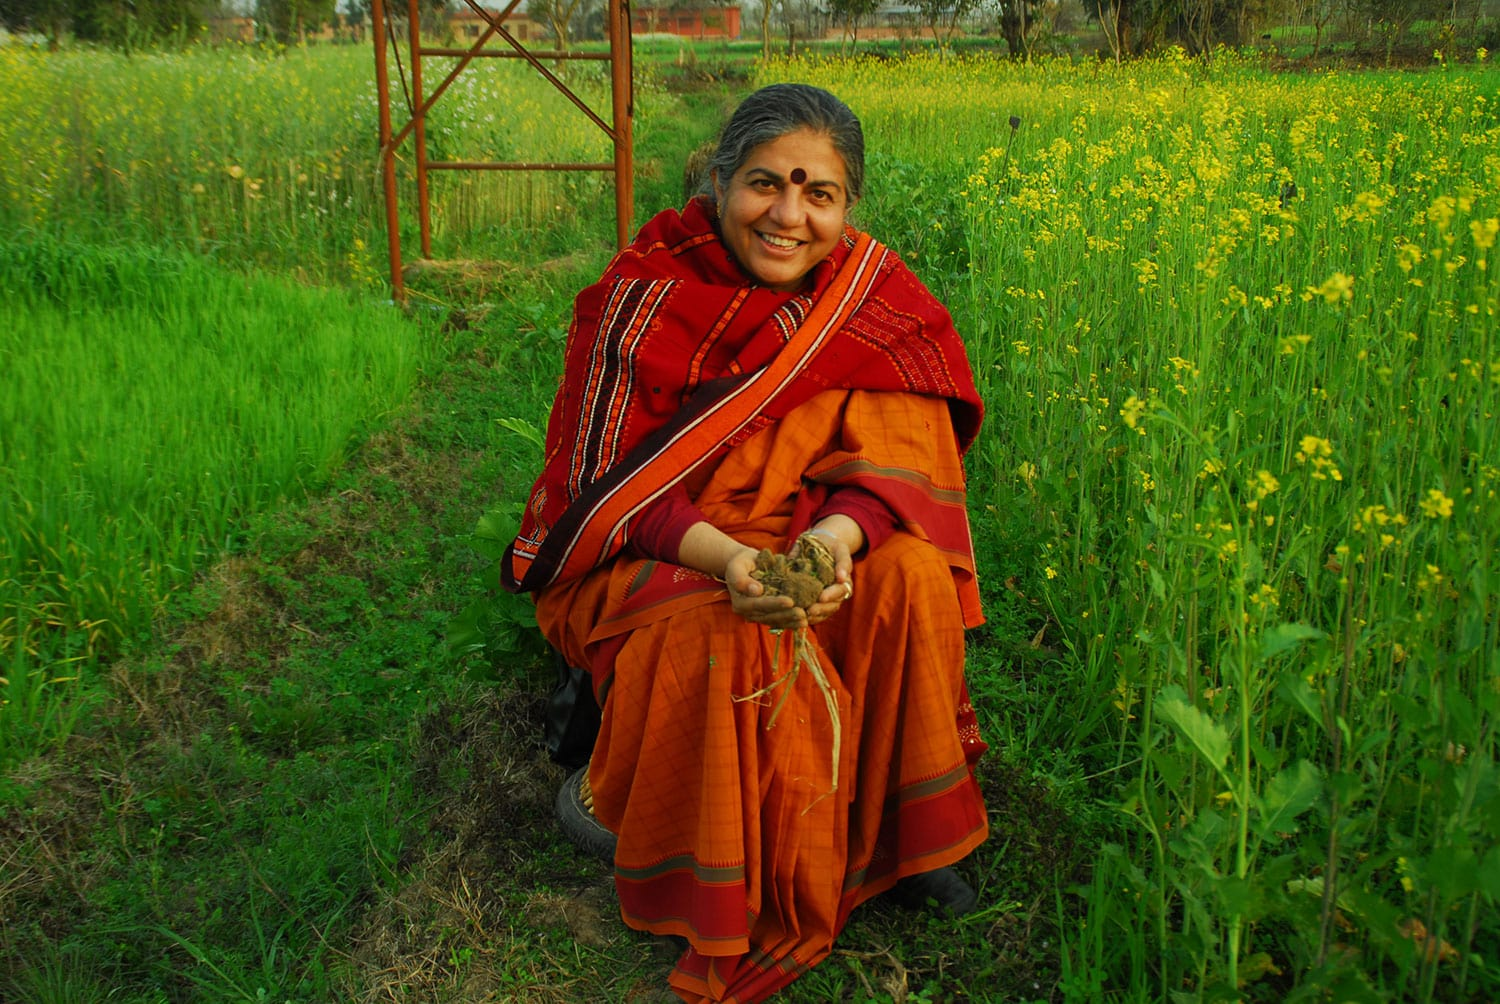 Vandana Shiva: The shift to biodiversity-based agriculture is a survival imperative